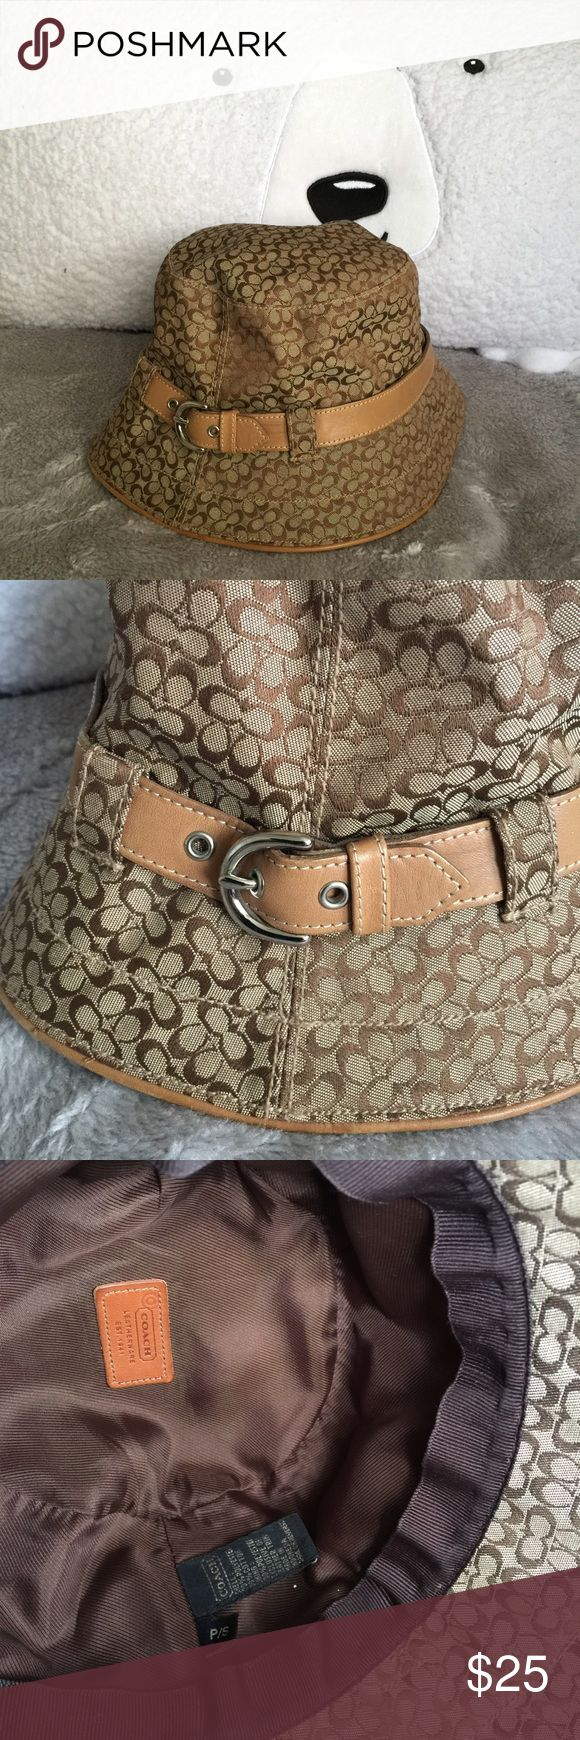 Coach hat Authentic coach hat this was bought awhile ago I believe used once only and got stuck in the closet no tags Coach Accessories Hats